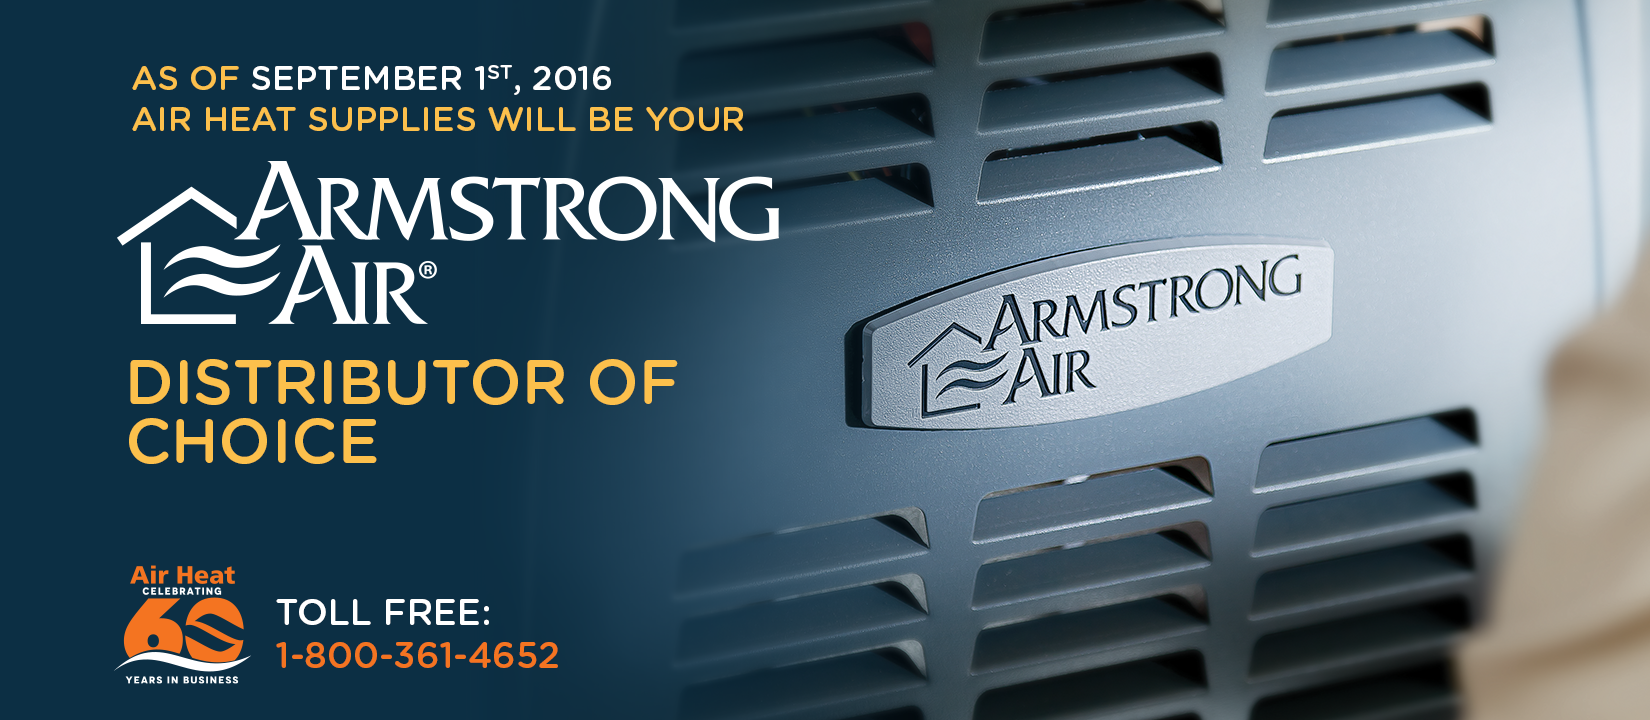 airheat-armstrong-banner-1650x720px-01-02